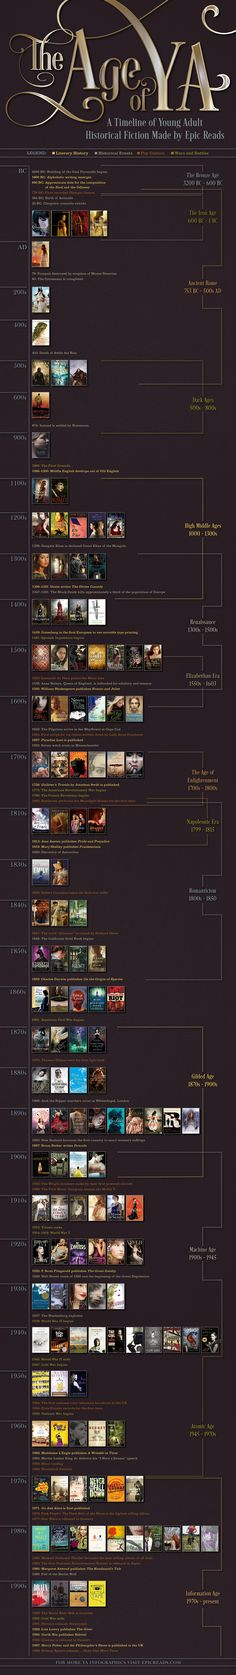 The Age of YA: A Timeline of Historical Fiction | Blog | Epic Reads <-- THIS IS AMAZING! #epicreads